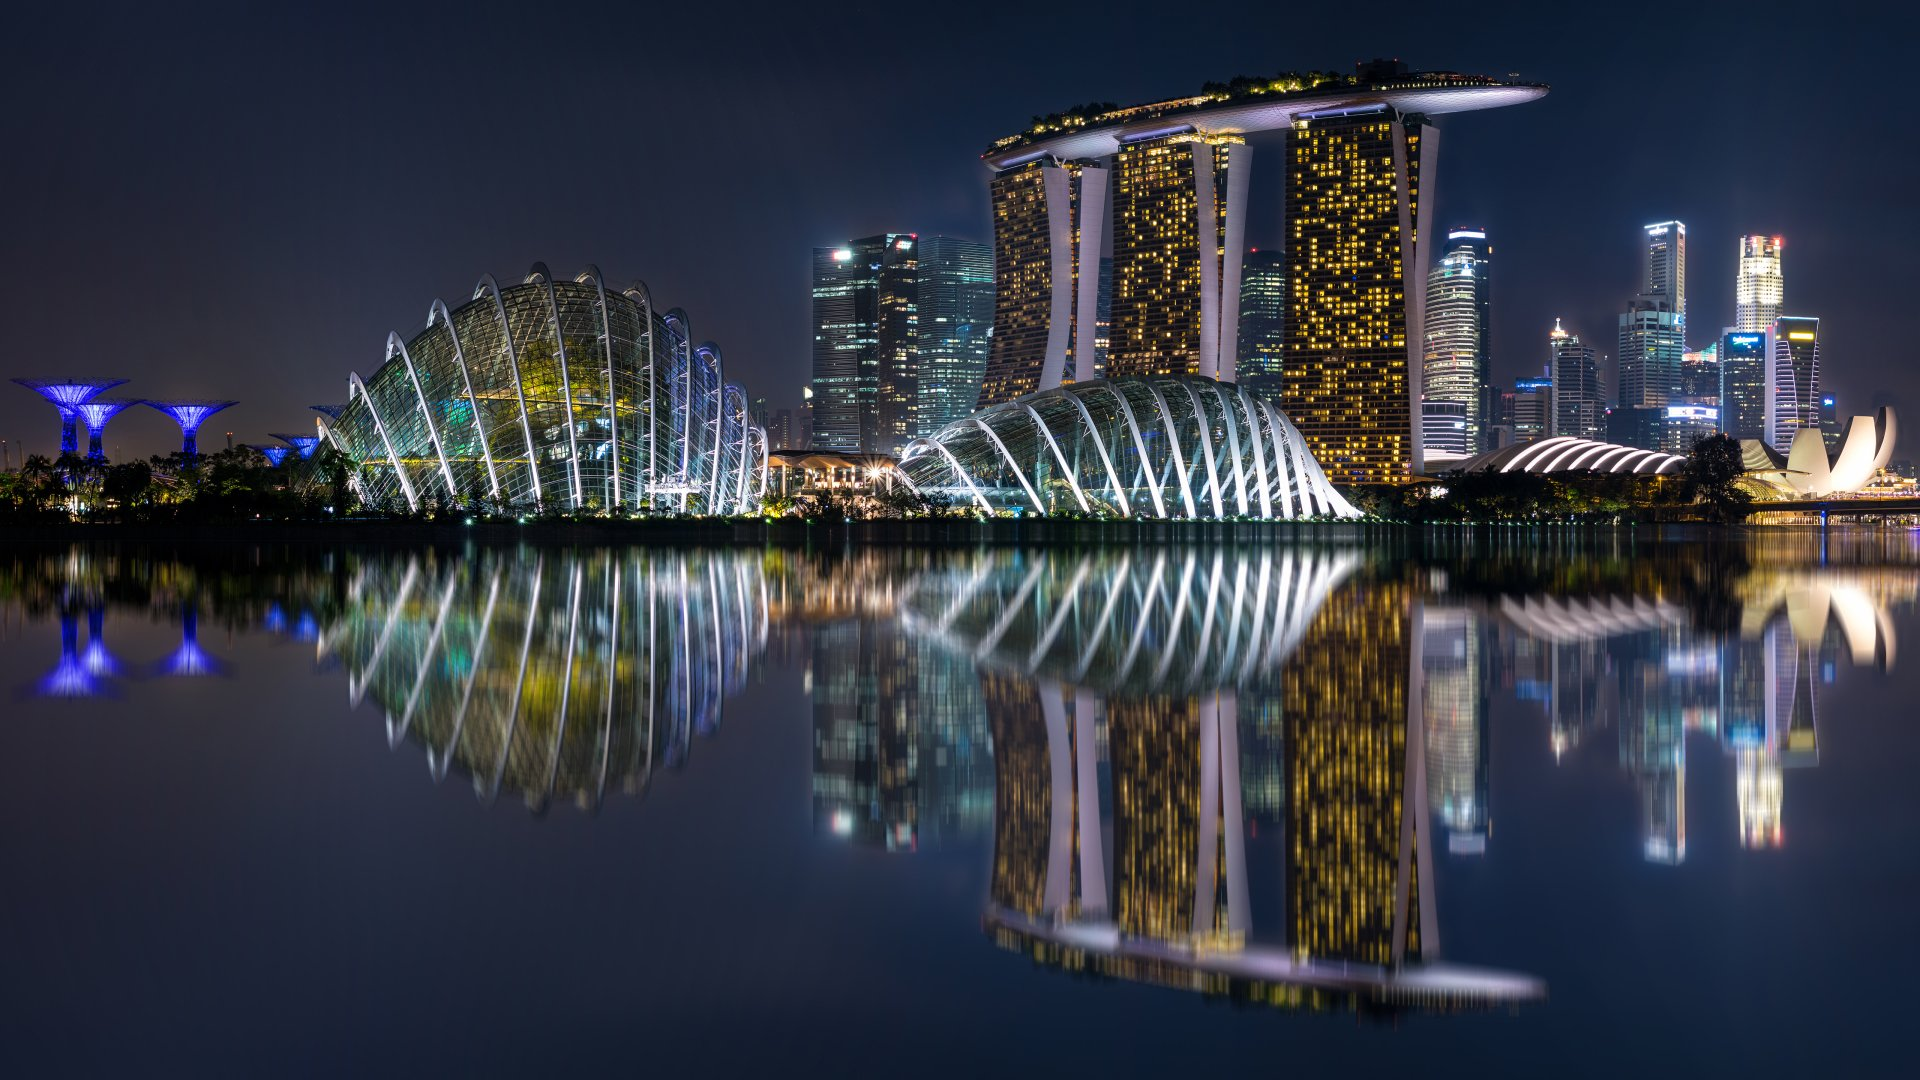 Man Made - Marina Bay Sands  Singapore Building Night Wallpaper